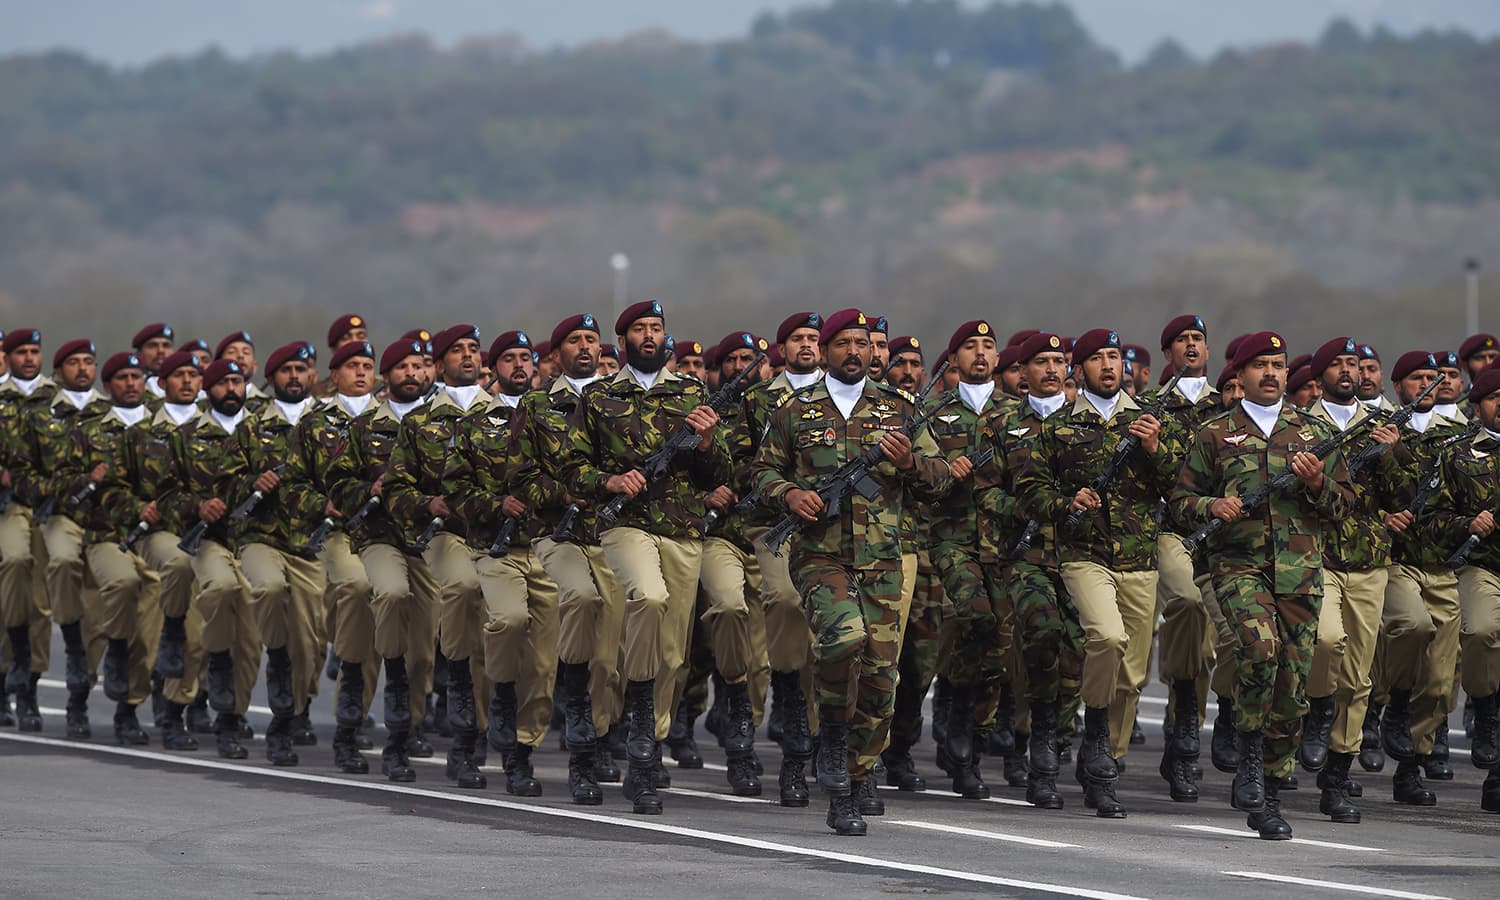 Special Service Group commandos march during the Pakistan Day parade in Islamabad on March 23, 2019. ─ AFP